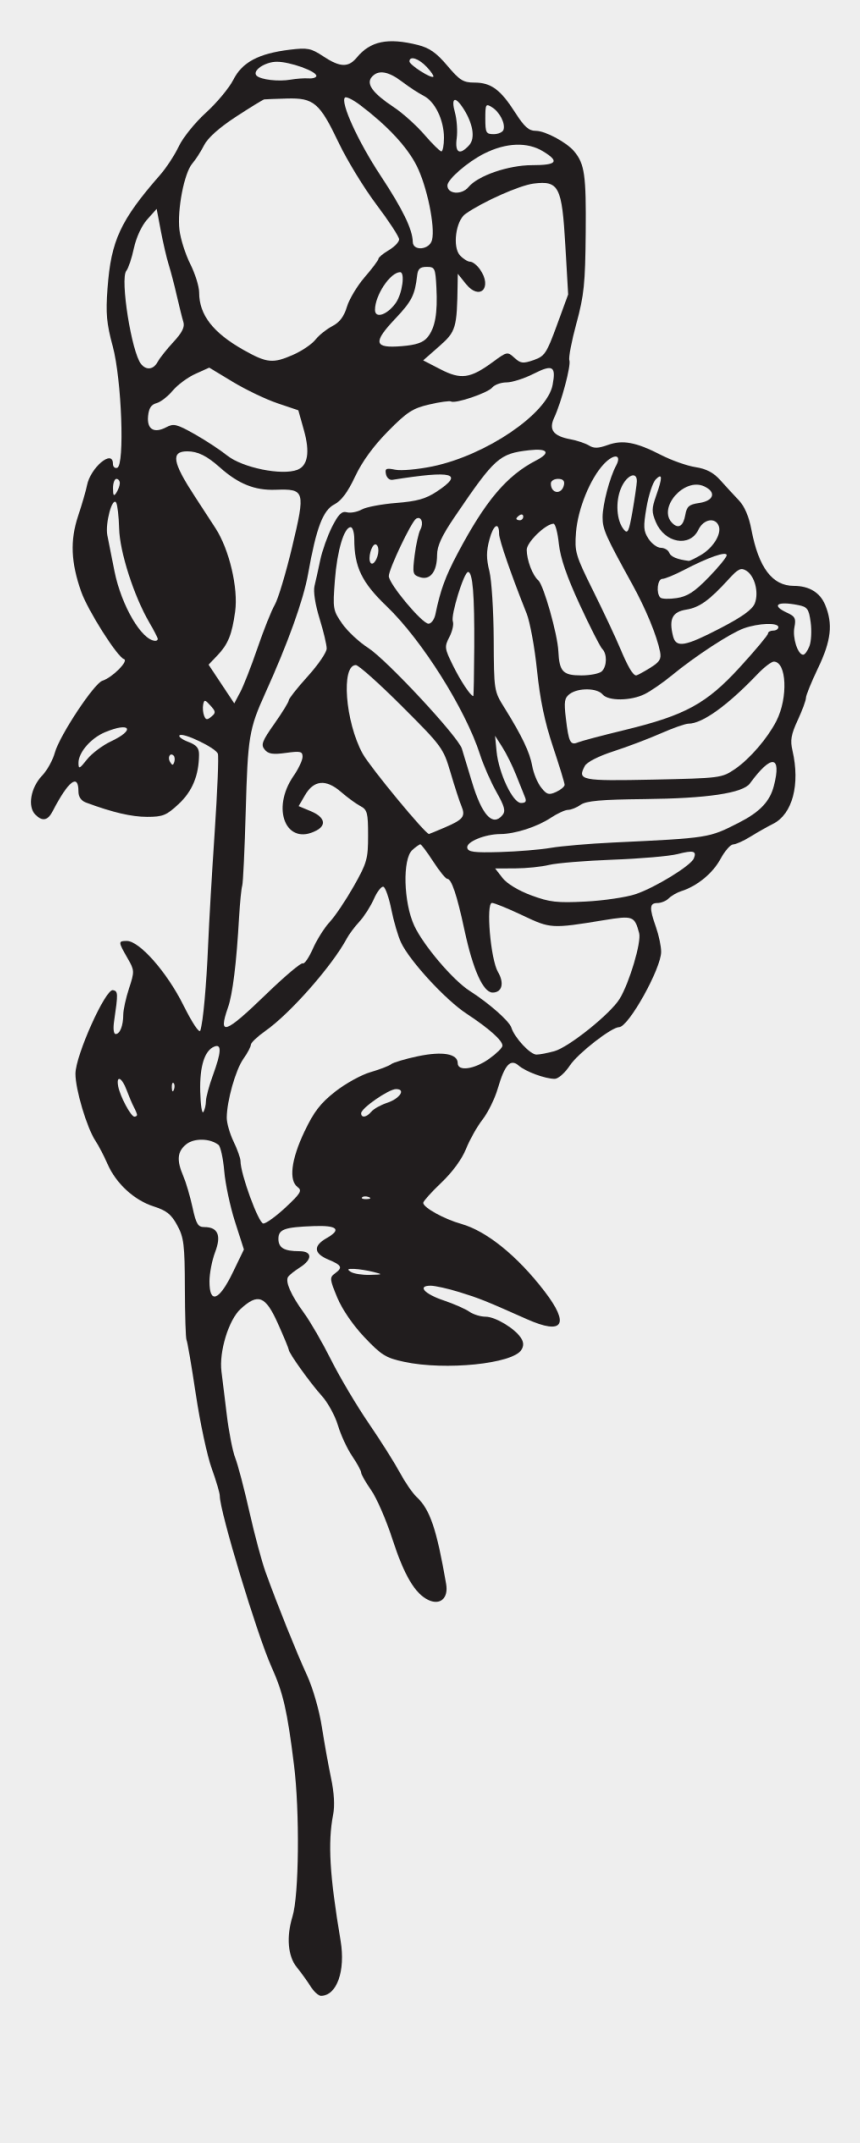 flowers clipart black and white, Cartoons - Flower Stem Black And White Clip Royalty Free Stock - Black And White Rose Tattoo Png